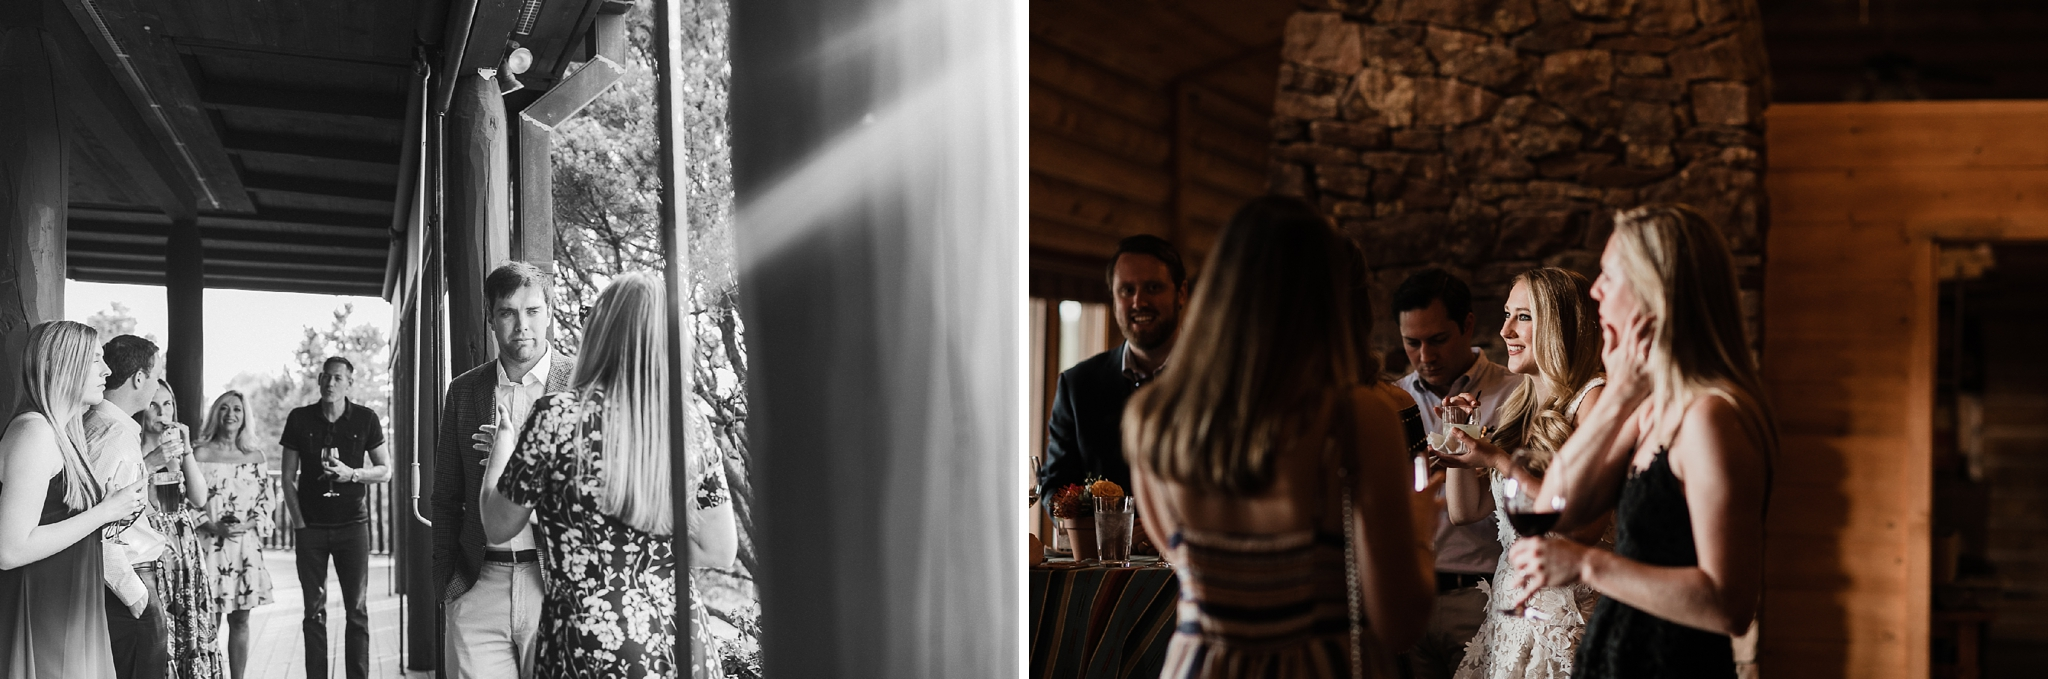 Alicia+lucia+photography+-+albuquerque+wedding+photographer+-+santa+fe+wedding+photography+-+new+mexico+wedding+photographer+-+new+mexico+wedding+-+las+campanas+wedding+-+rehearsal+dinner+-+wedding+weekend_0012.jpg